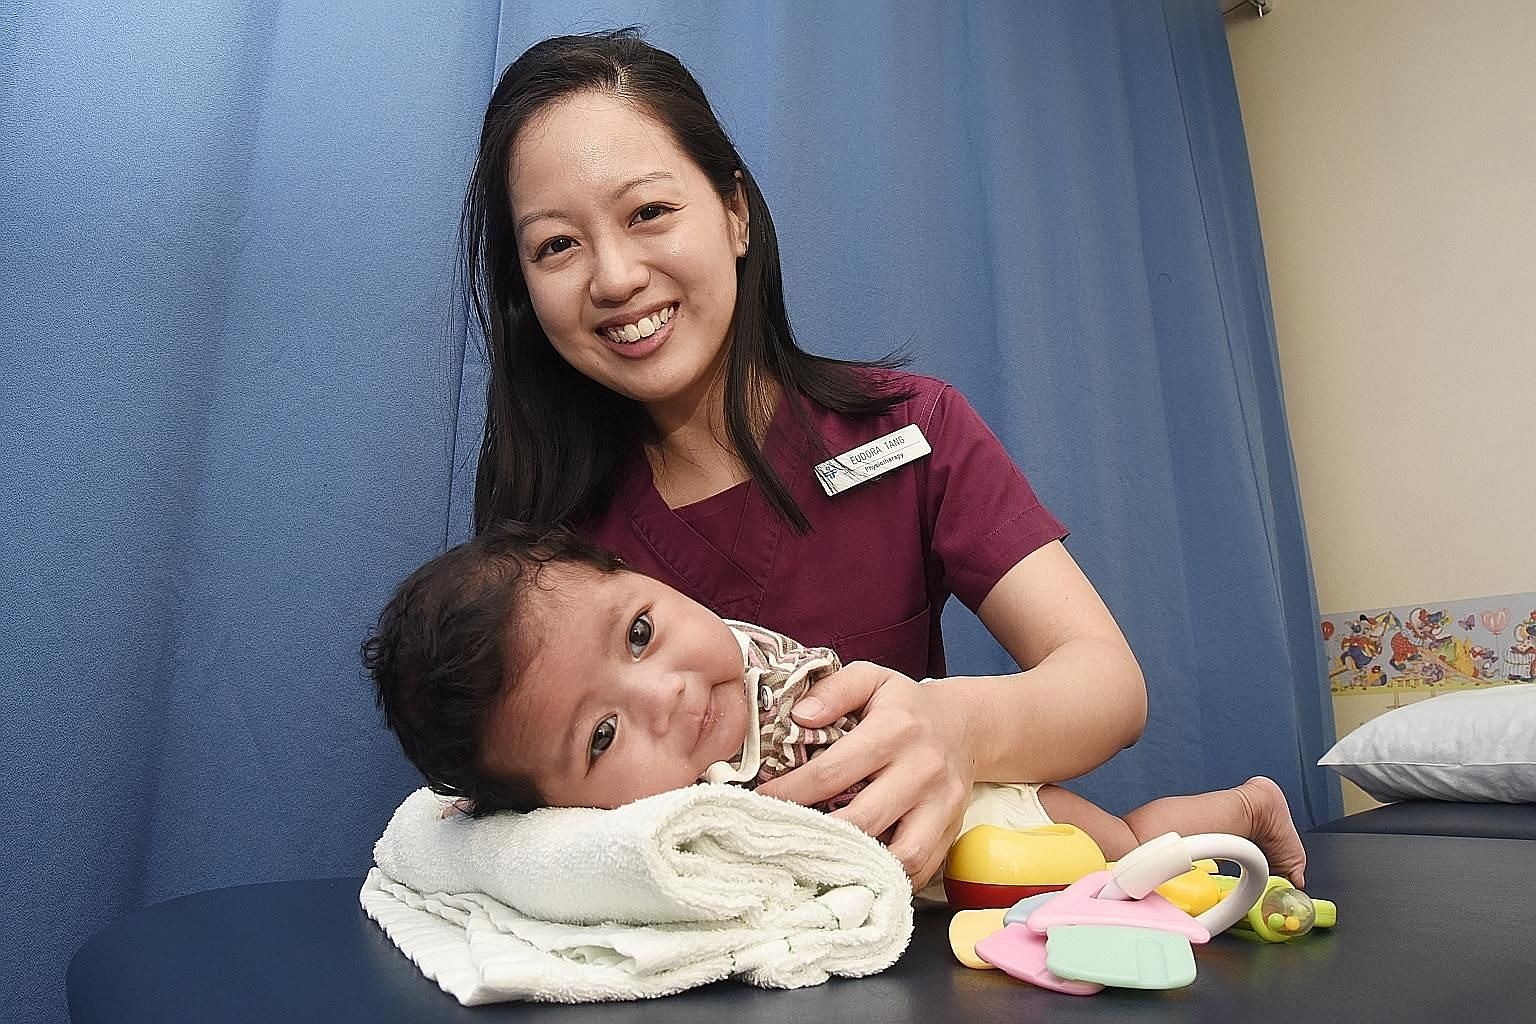 Ms Eudora Tang loves her work as she can provide relief to anxious parents and bring smiles to children.